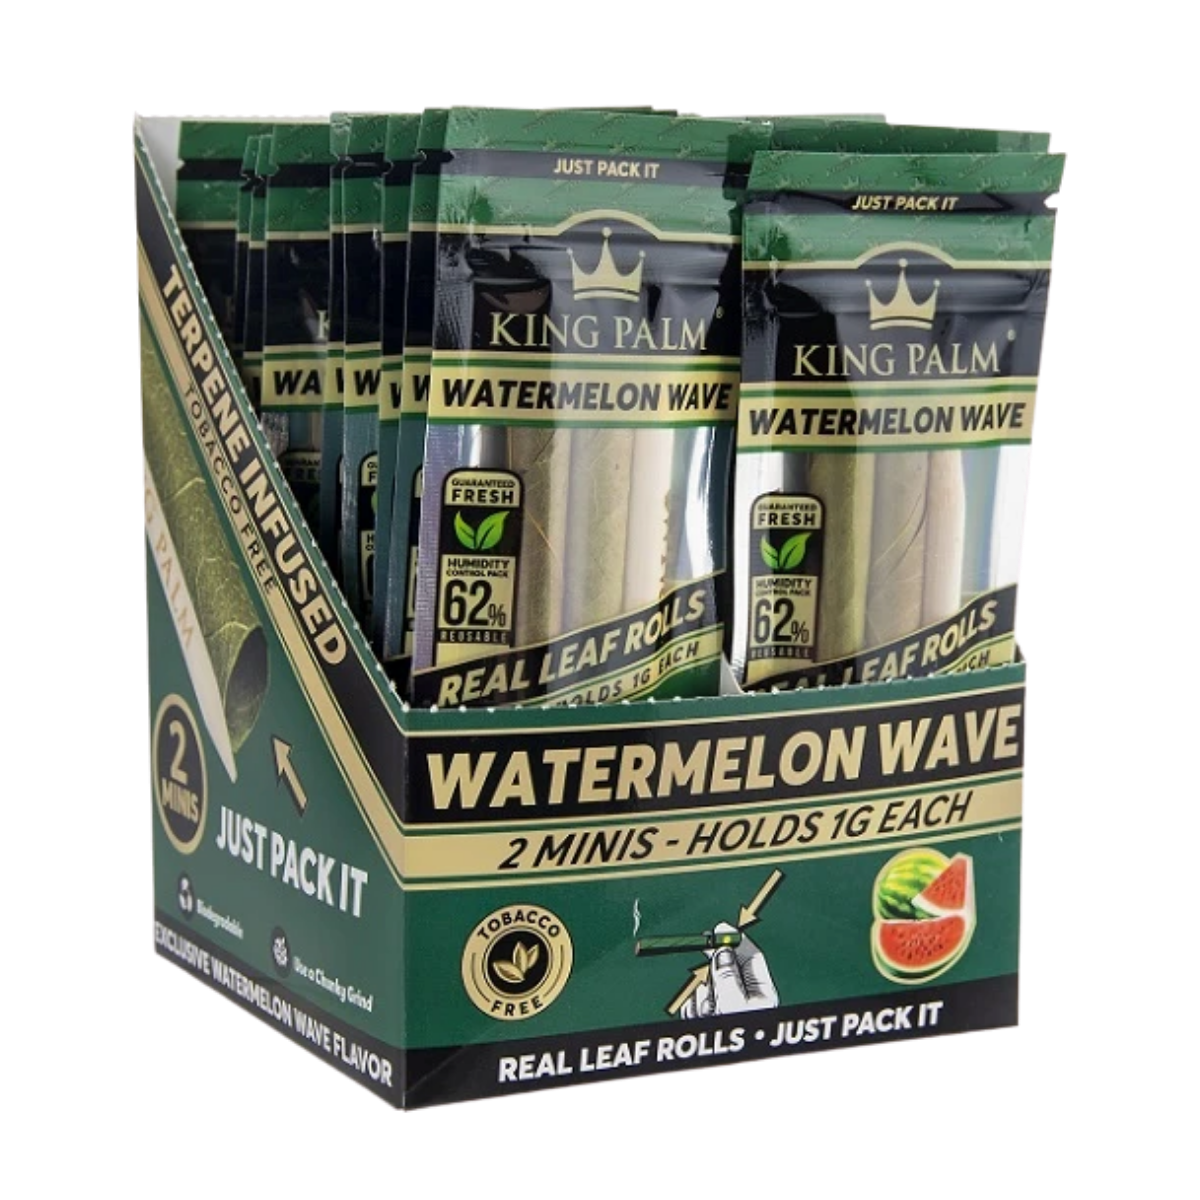 Full Box King Palm Super Slow Burning Wraps Pack with 2 Mini Rolls - Watermelon Wave Flavour - Holds 1g each - The Green Box Australia